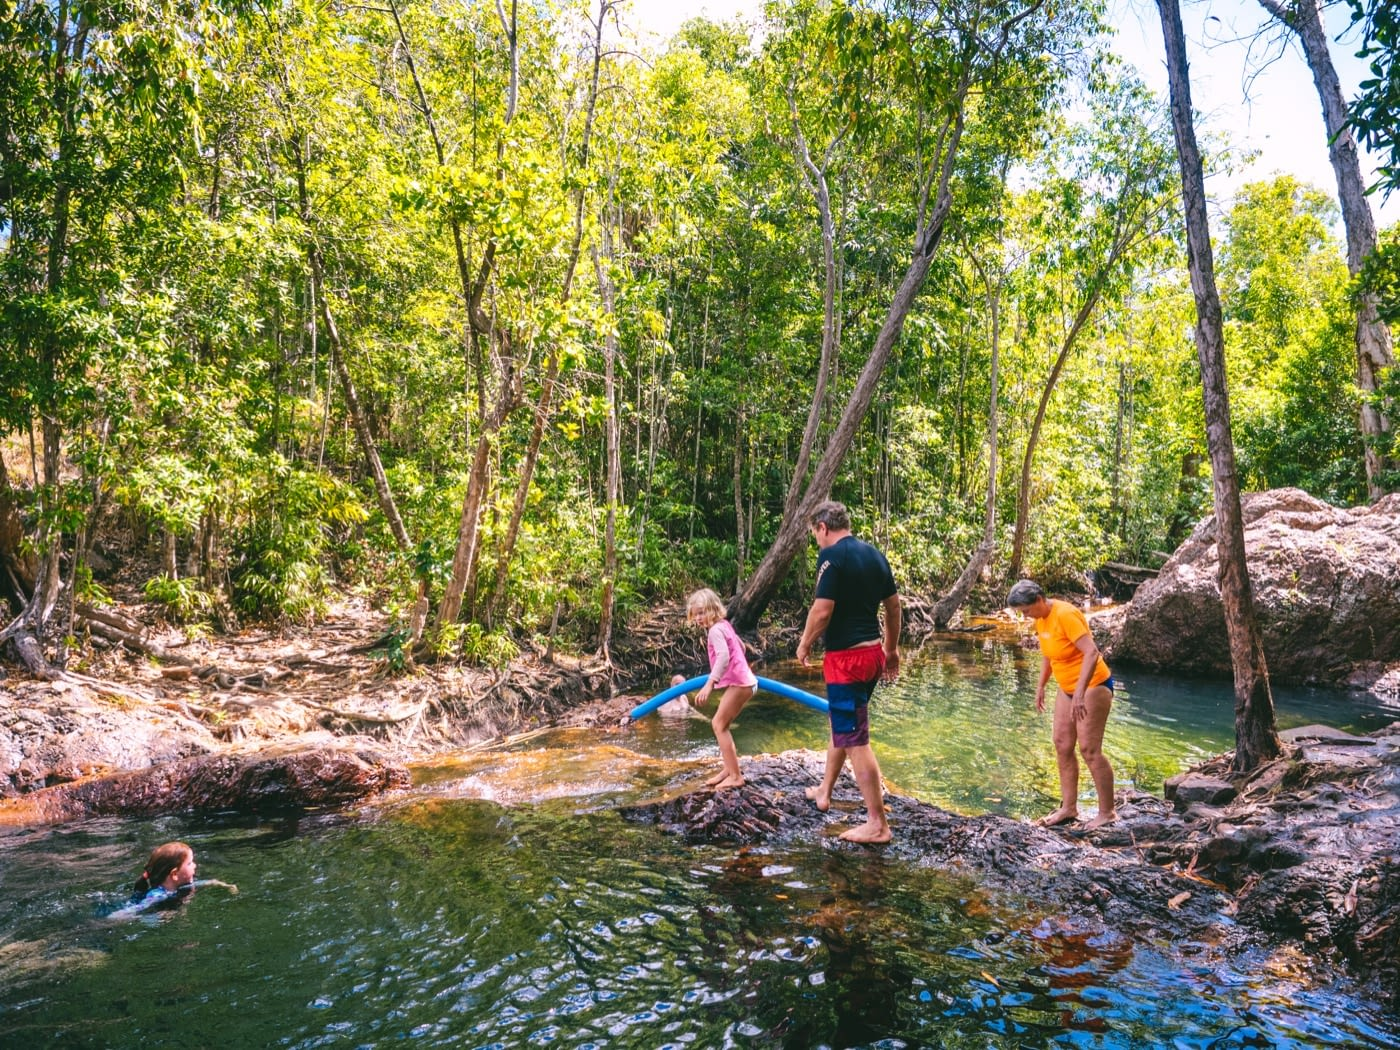 Kids lining up to get into the water at Buley Rockhole